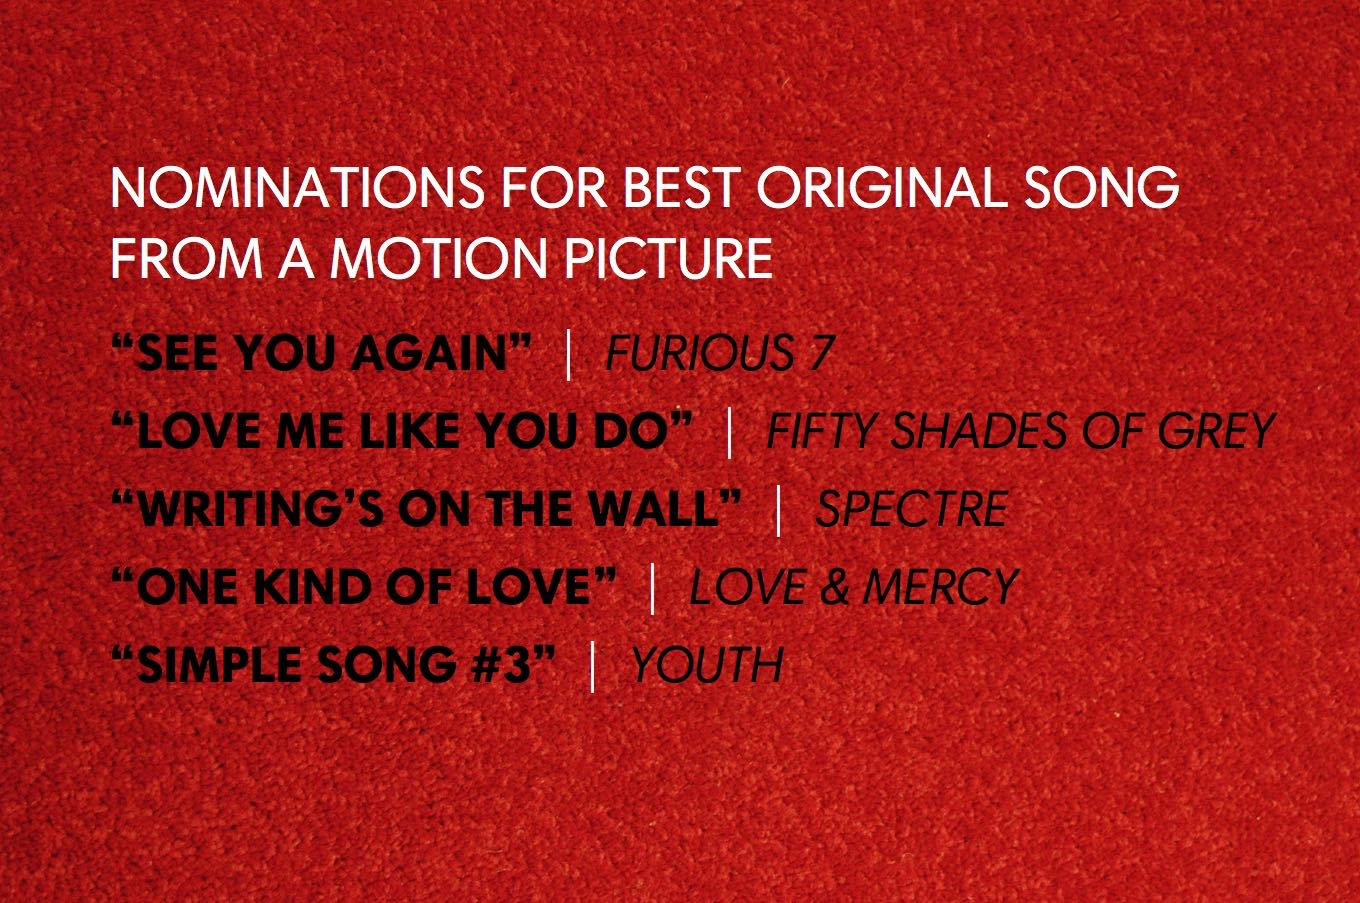 Golden Globes nominations for best original song from a motion picture